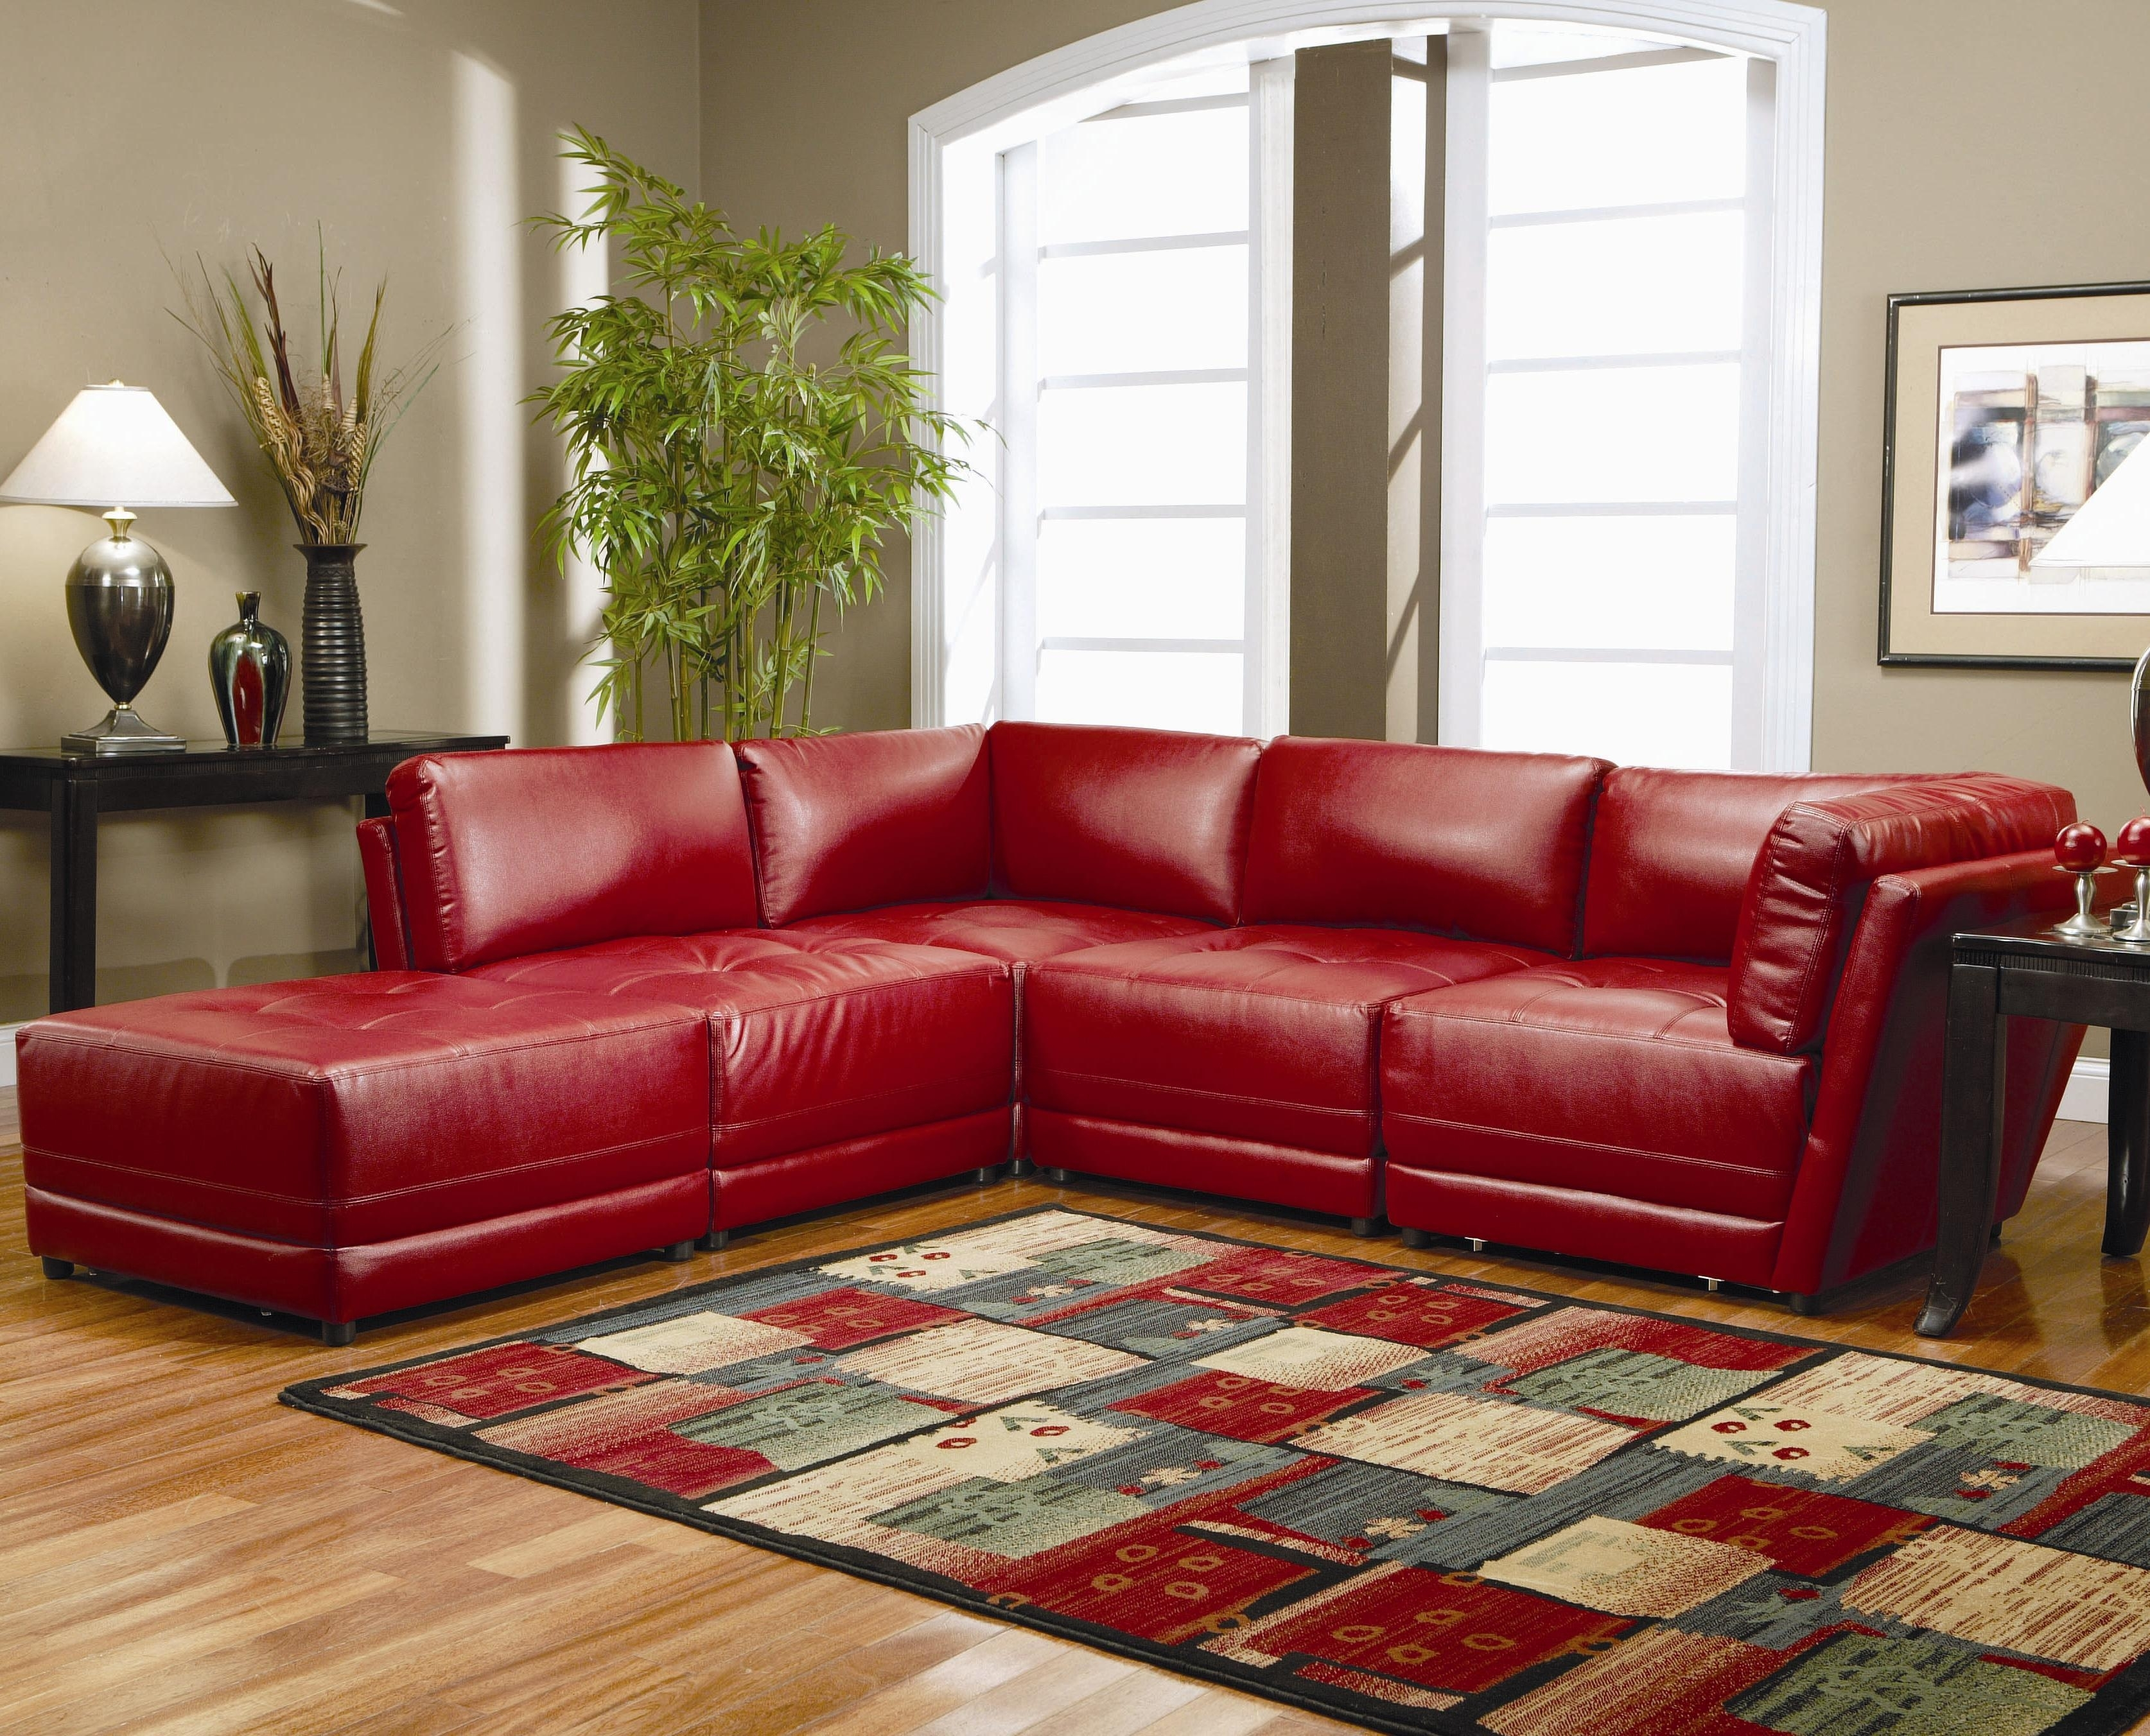 Warm Red Leather Sectional L Shaped Sofa Design Ideas For Living inside Red Faux Leather Sectionals (Image 15 of 15)